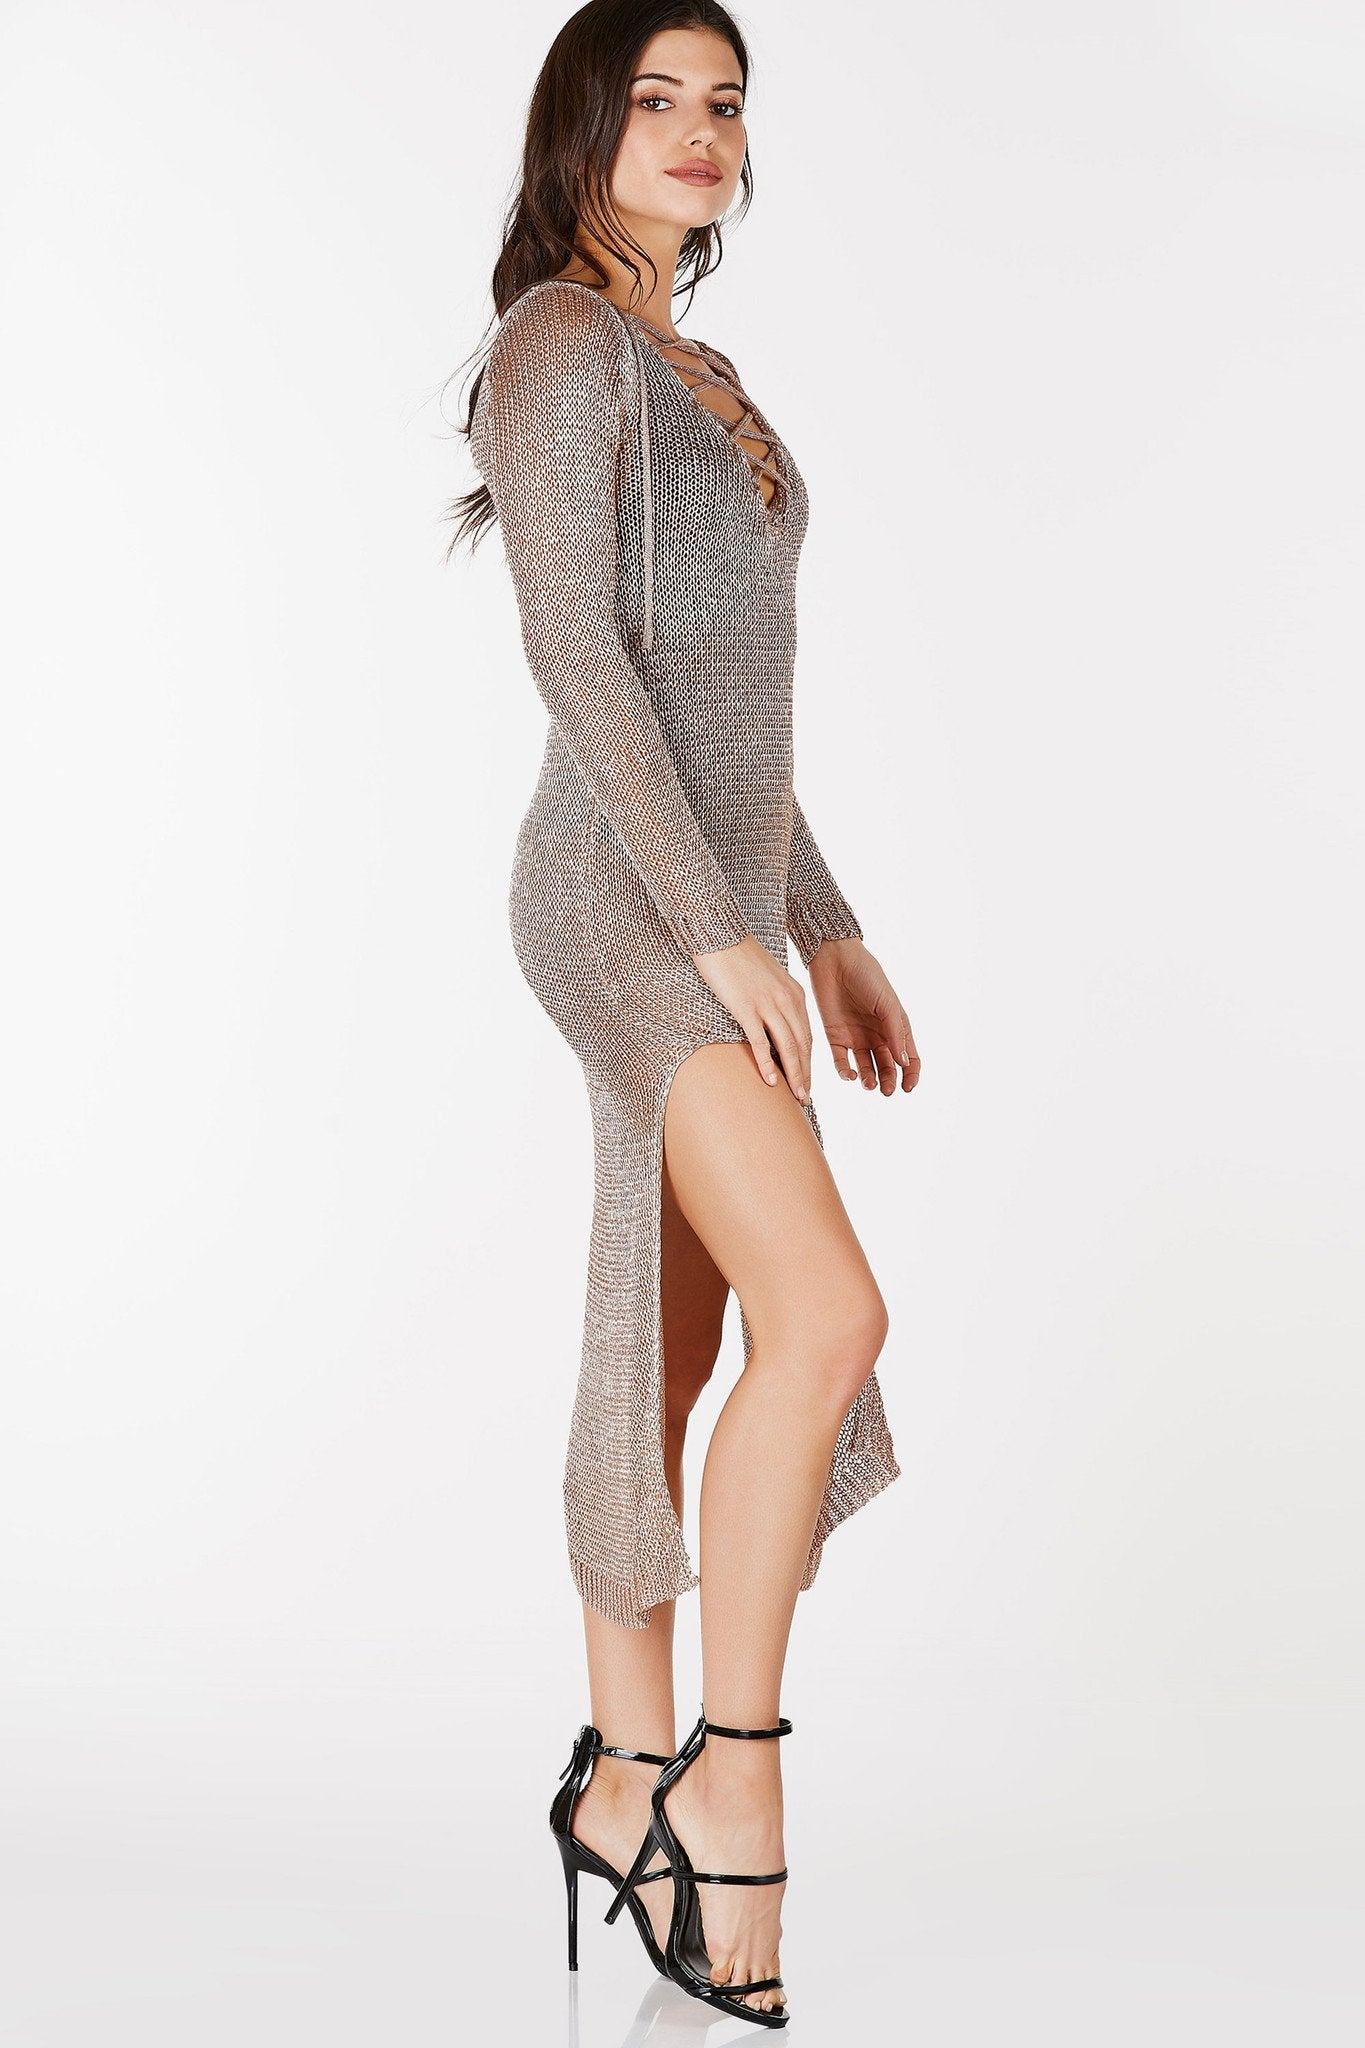 Deep V-neckline with lace up detailing. Long sleeve with high slits on each side. Loose knit throughout with metallic finish.